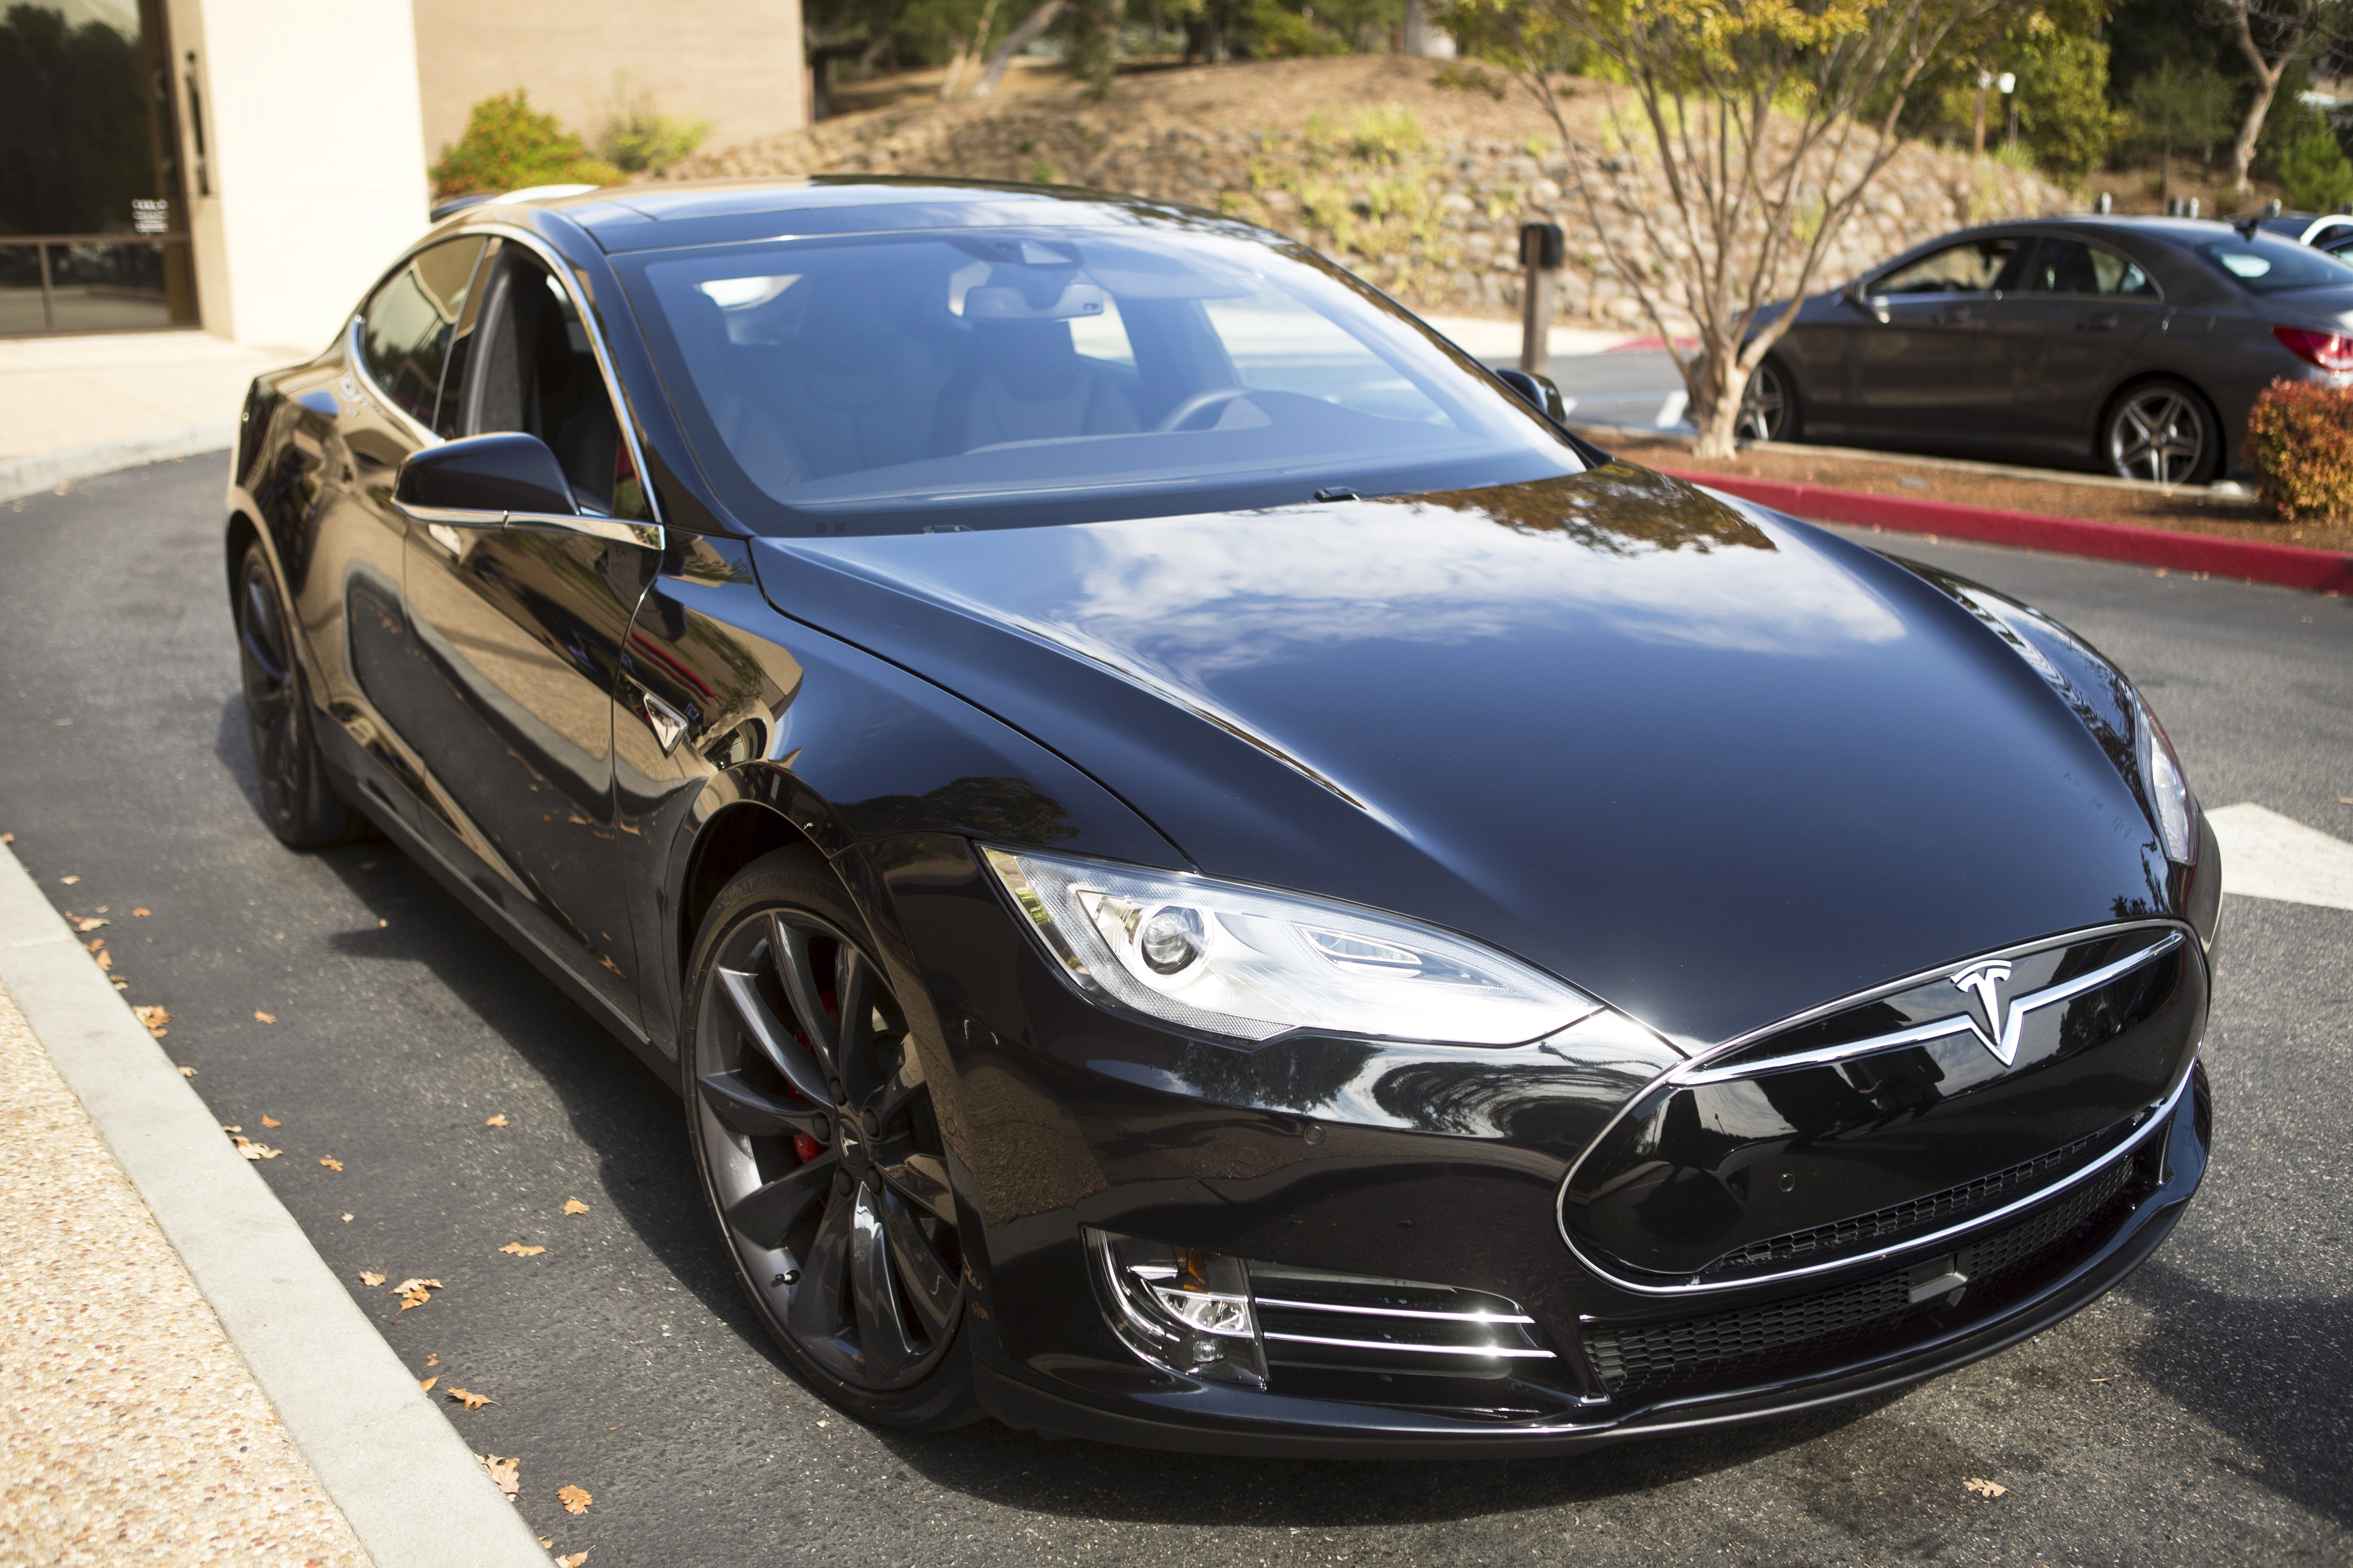 A Tesla Model S with version 7.0 software update containing Autopilot features is seen during a Tesla event in Palo Alto, California October 14, 2015. Photo by Beck Diefenbach/REUTERS